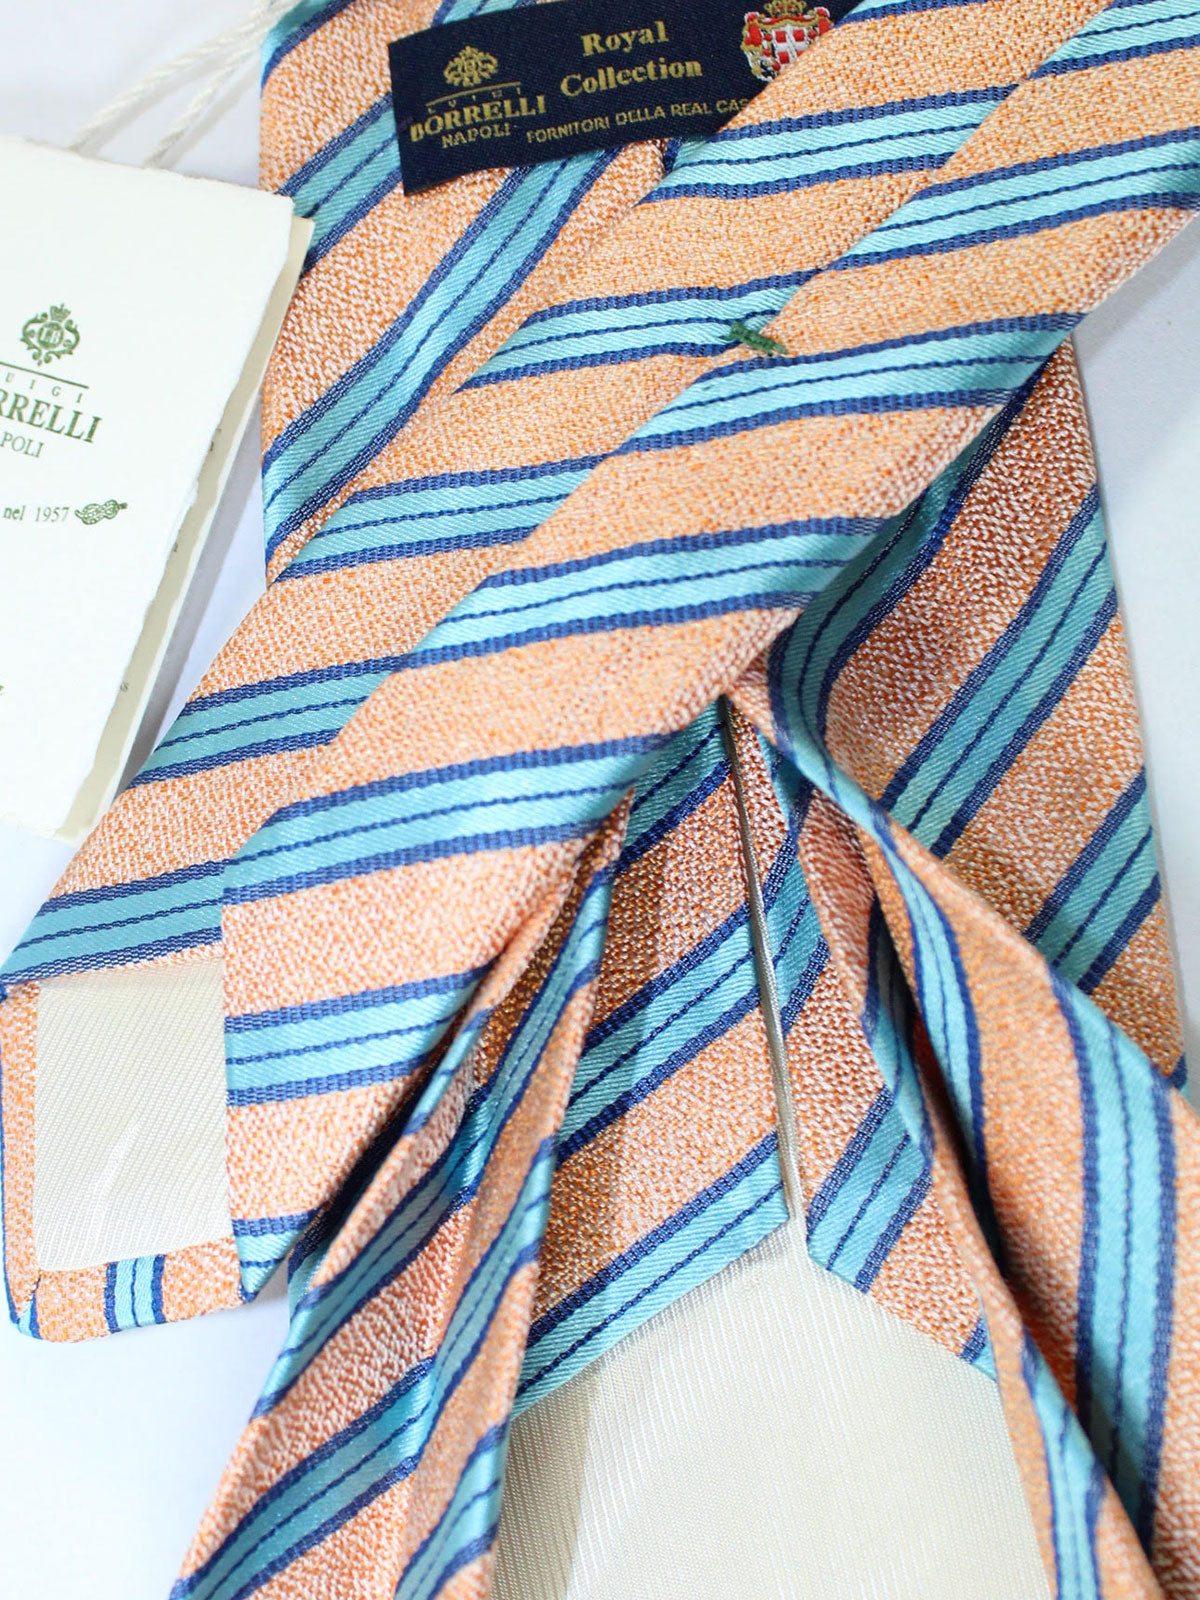 Luigi Borrelli 11 Fold Tie Peach Blue Stripes ROYAL COLLECTION - Elevenfold Necktie